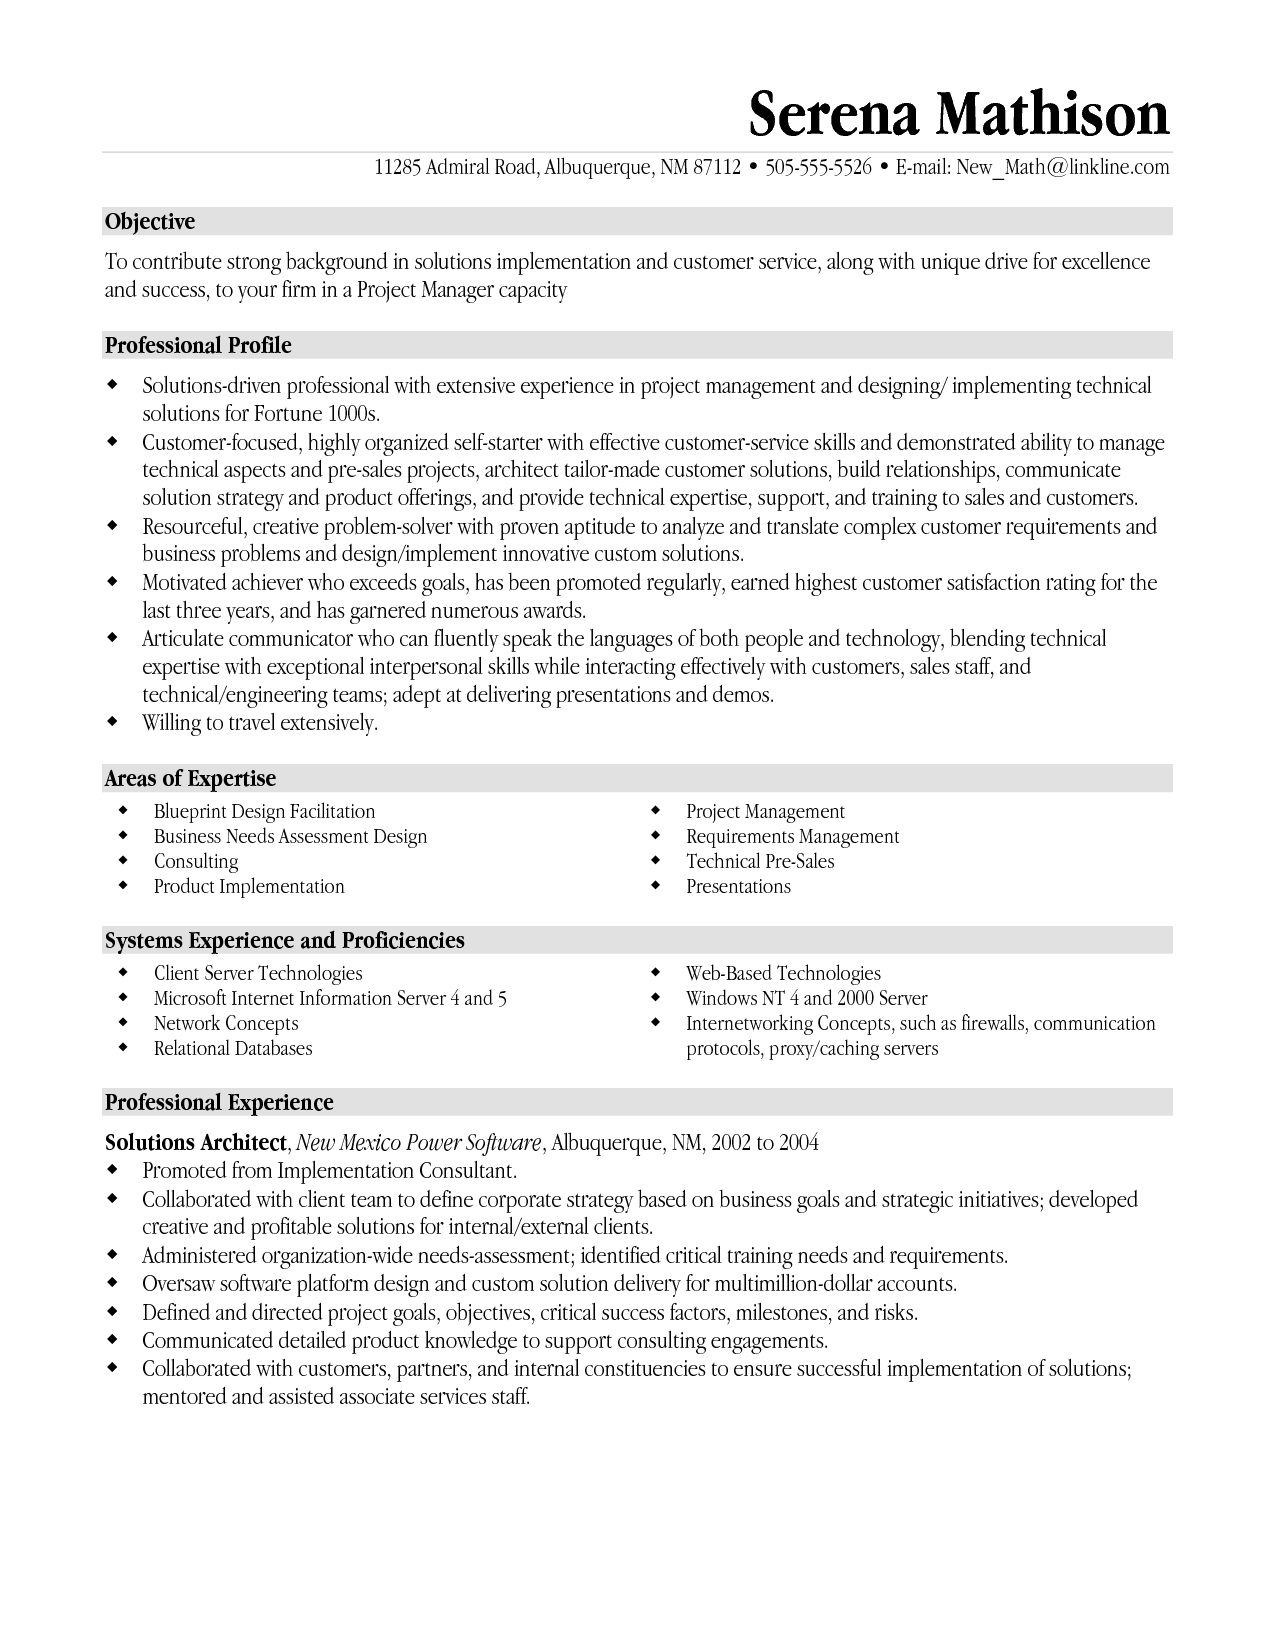 resume templates project manager project management resume - Sample Project Manager Resumes